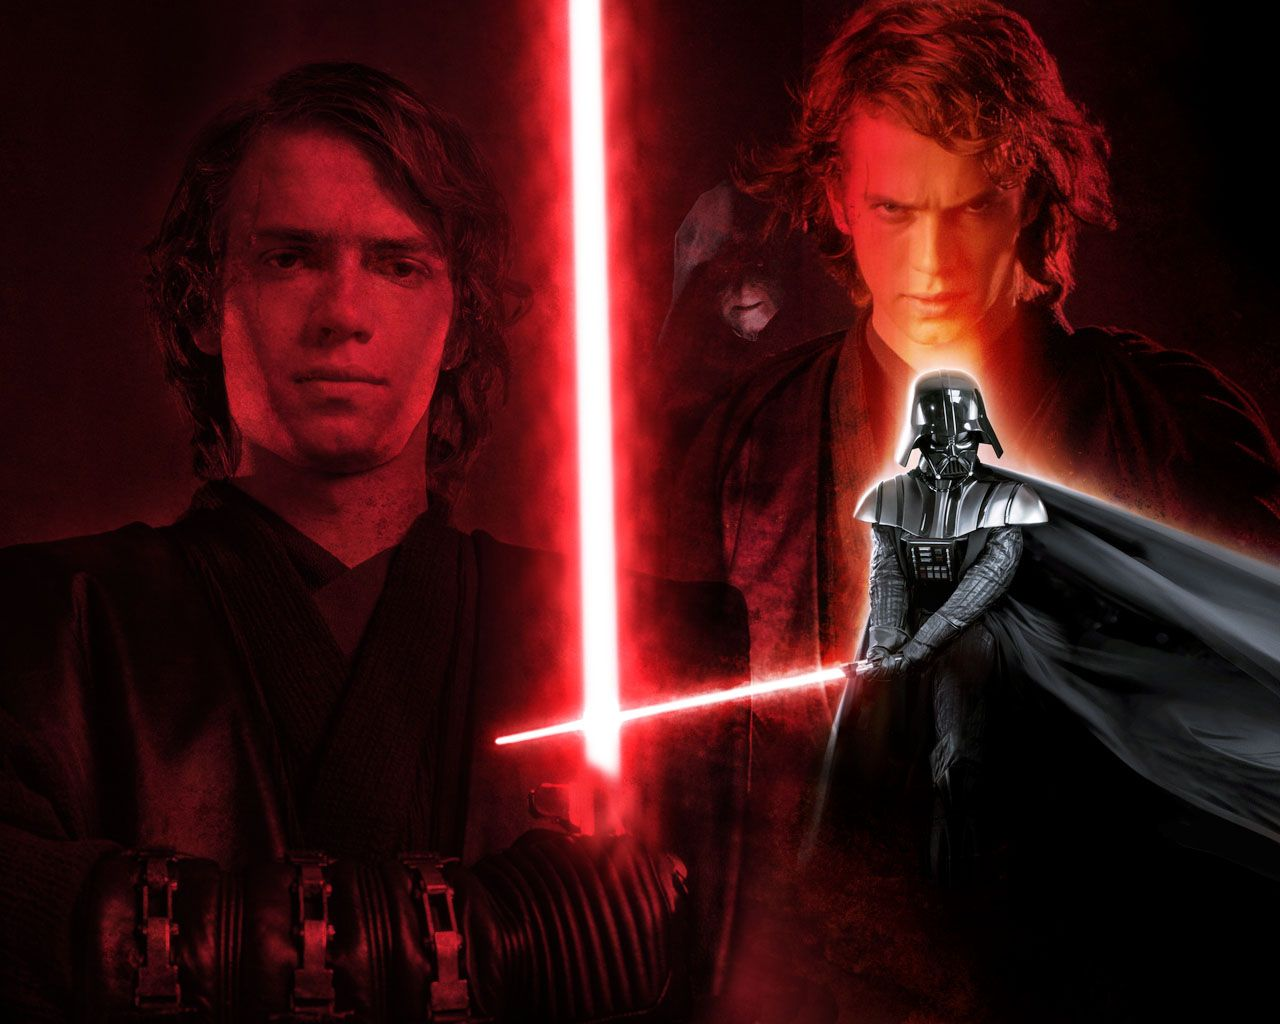 Star Wars Anakin Skywalker Wallpaper: Anakin Skywalker Darth Vader Wallpaper